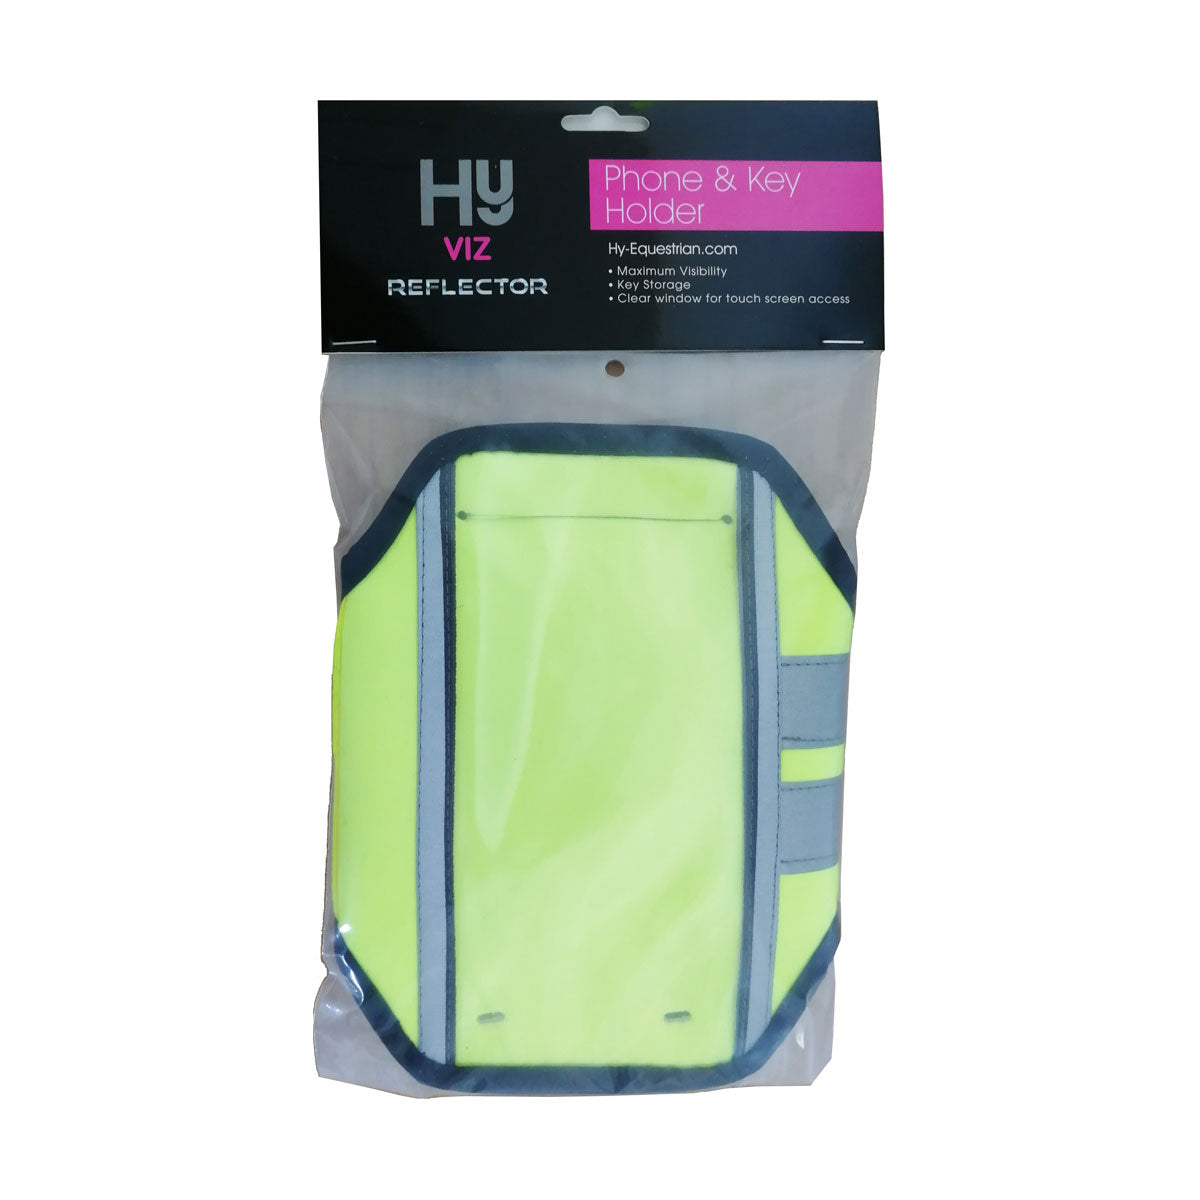 HyVIZ Reflector Phone & Key Holder